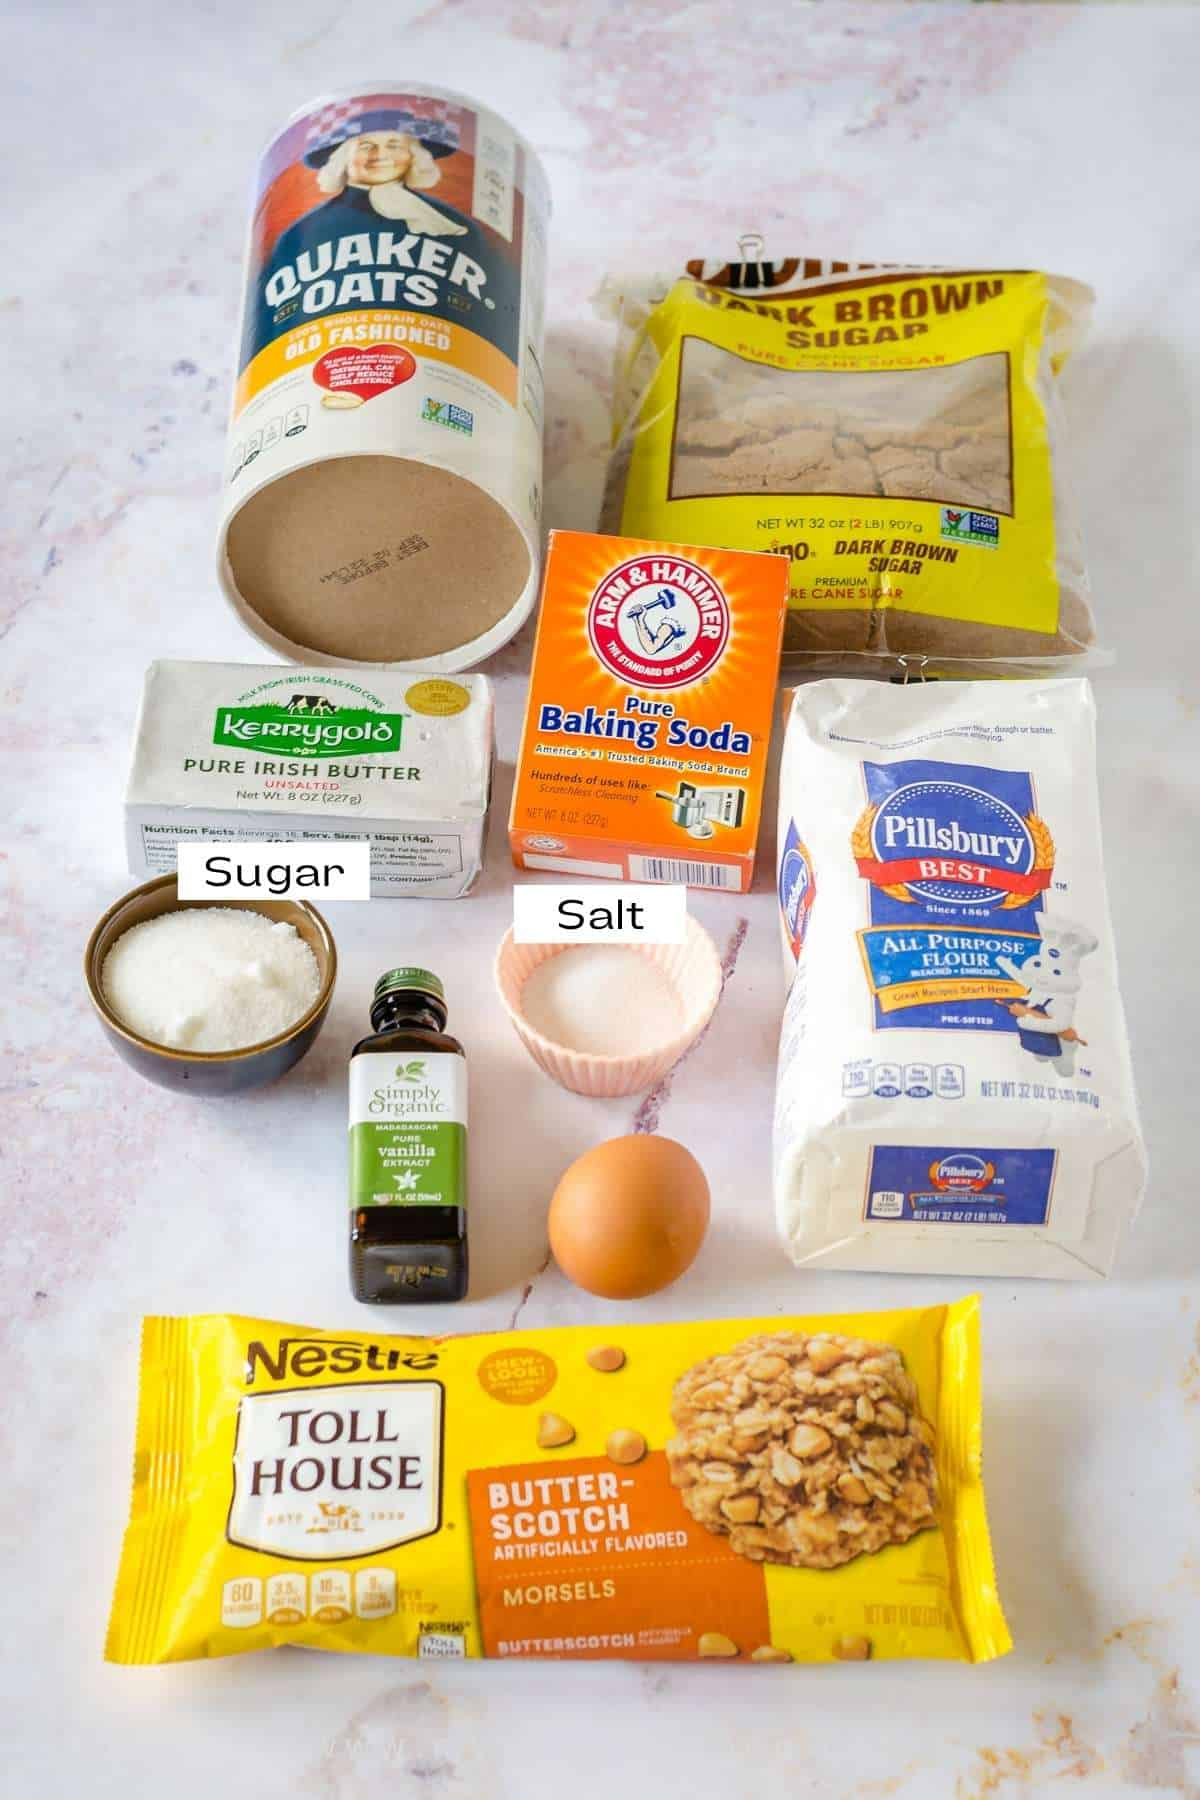 Ingredients for oats butterscotch cookies.